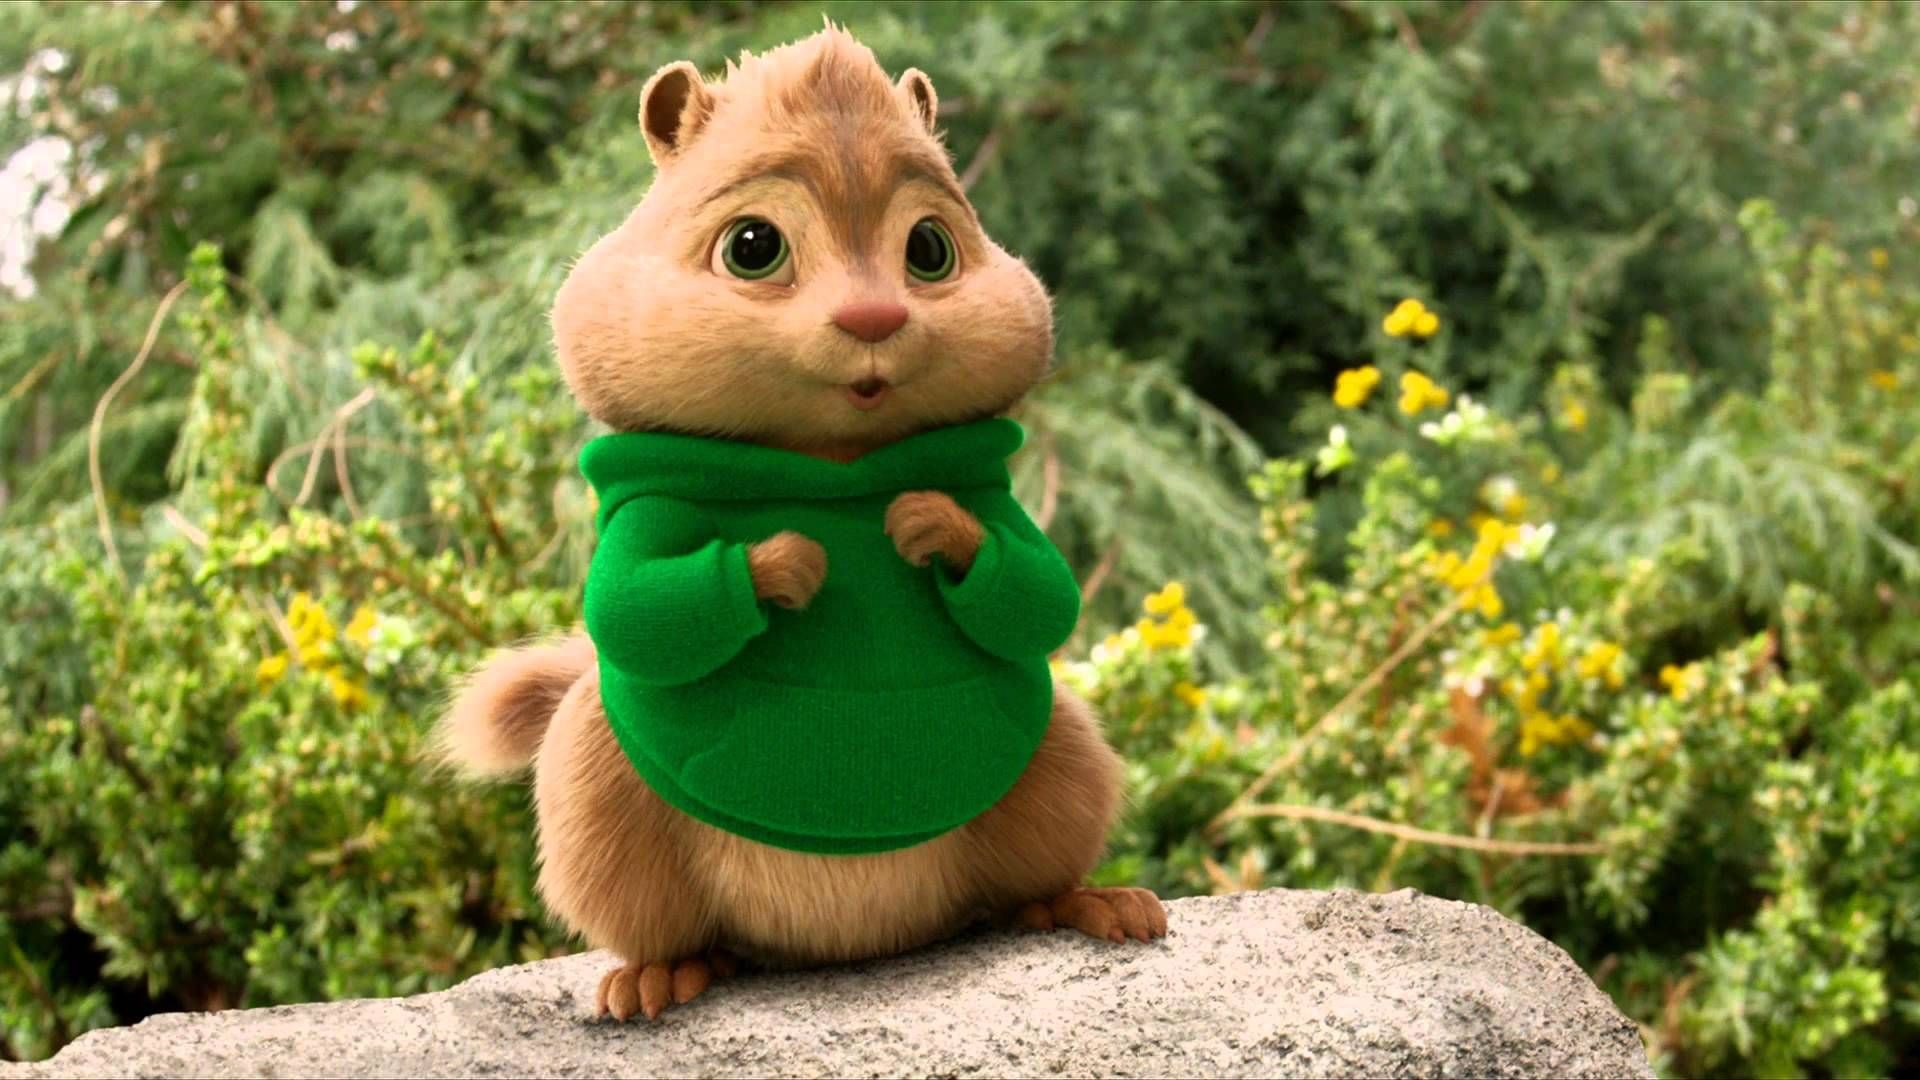 Playing Minigolf With Alvin And The Chipmunks With Images